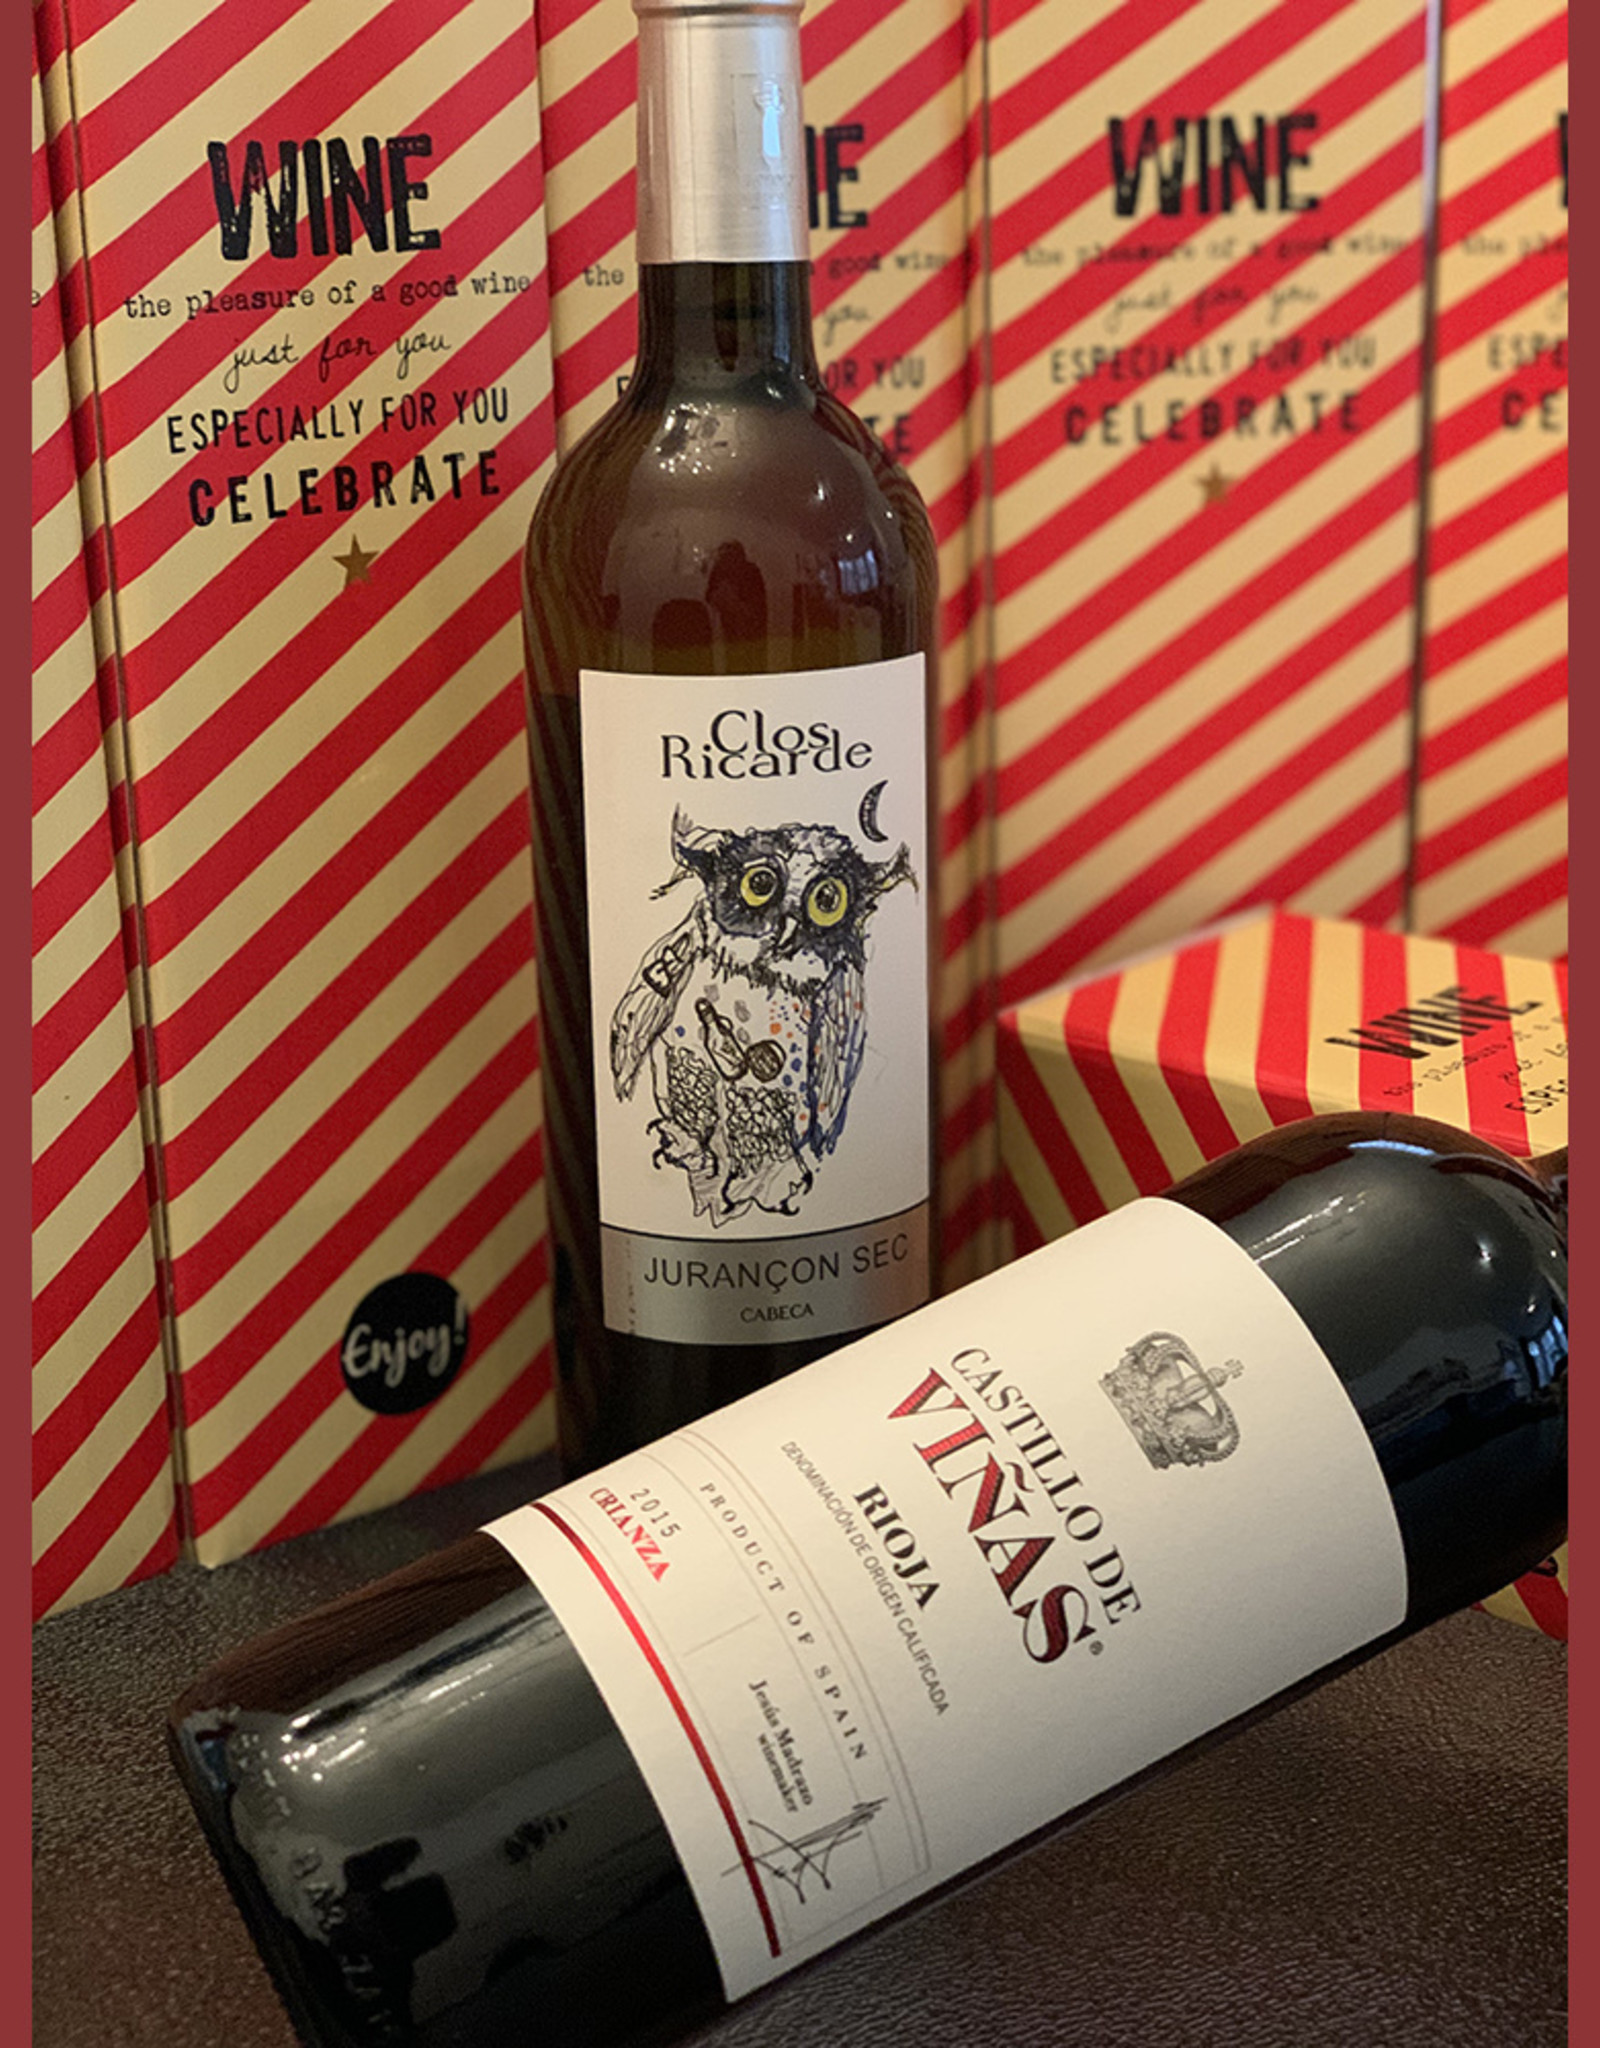 Wine bottle in gift box